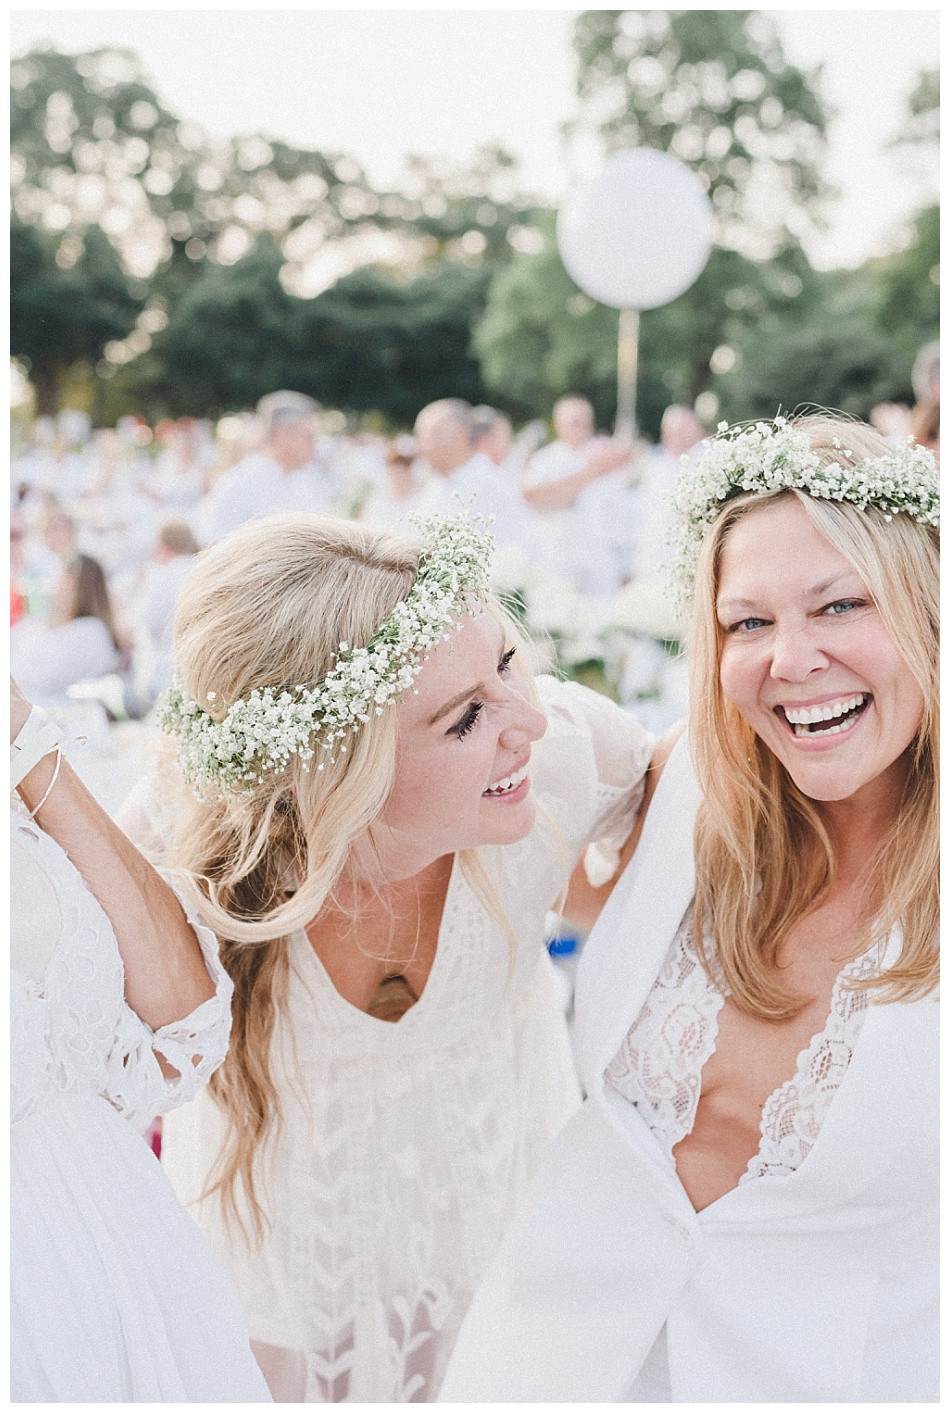 Flower crowns, white dresses, women laughing. Streamers released, portrait of young woman, large white balloons, red lipstick, flowers in her hair, white dress.  Fete en Blanc (Party in White) Lancaster 2019 at Longs Park by Angela Weiler Photography - Fine Art Wedding and Lifestyle Photographer in Lancaster Pennsylvania.